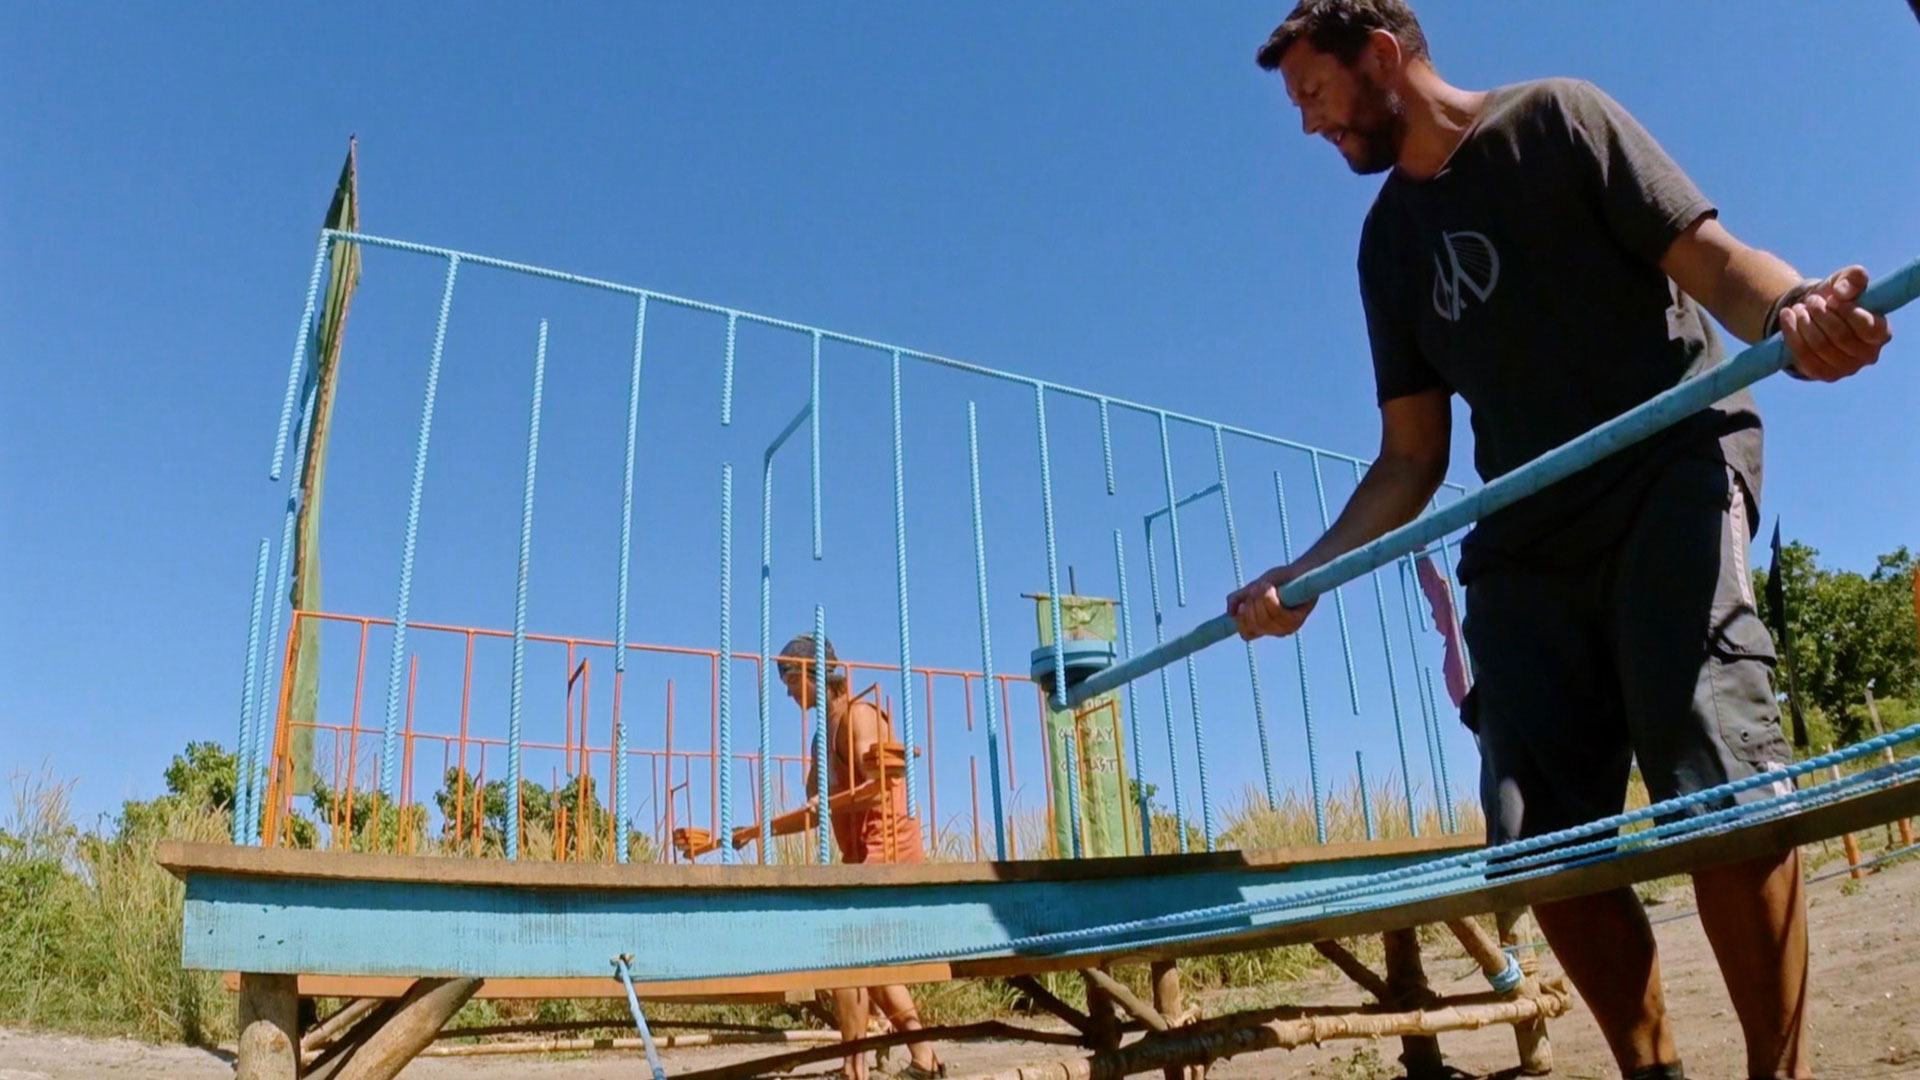 Bret wiggles his pole through the wire maze.